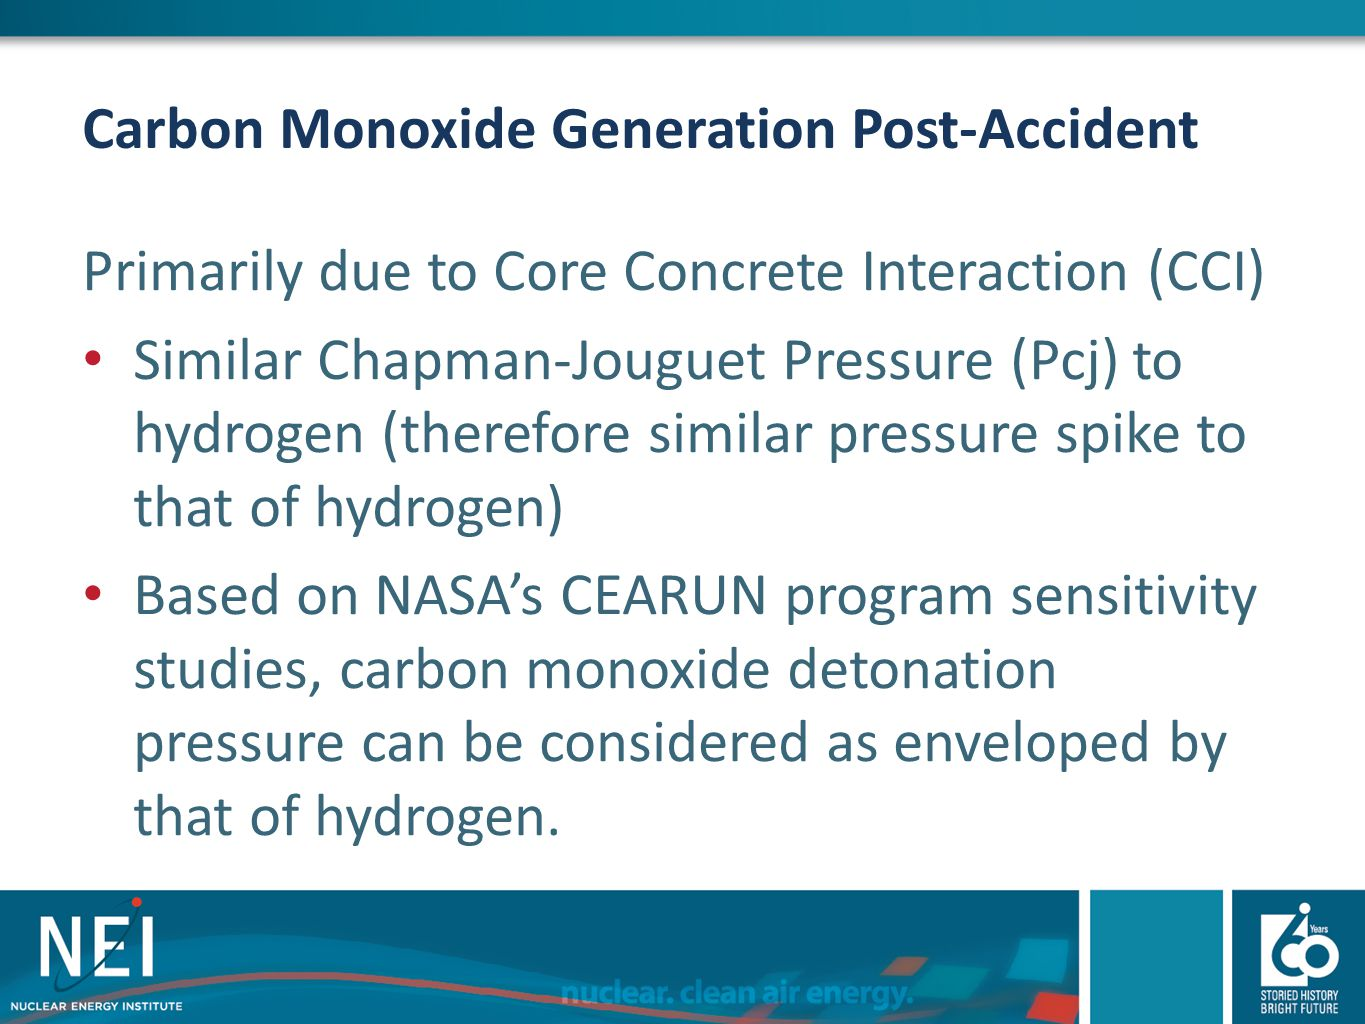 Carbon Monoxide Generation Post-Accident Primarily due to Core Concrete Interaction (CCI) Similar Chapman-Jouguet Pressure (Pcj) to hydrogen (therefor